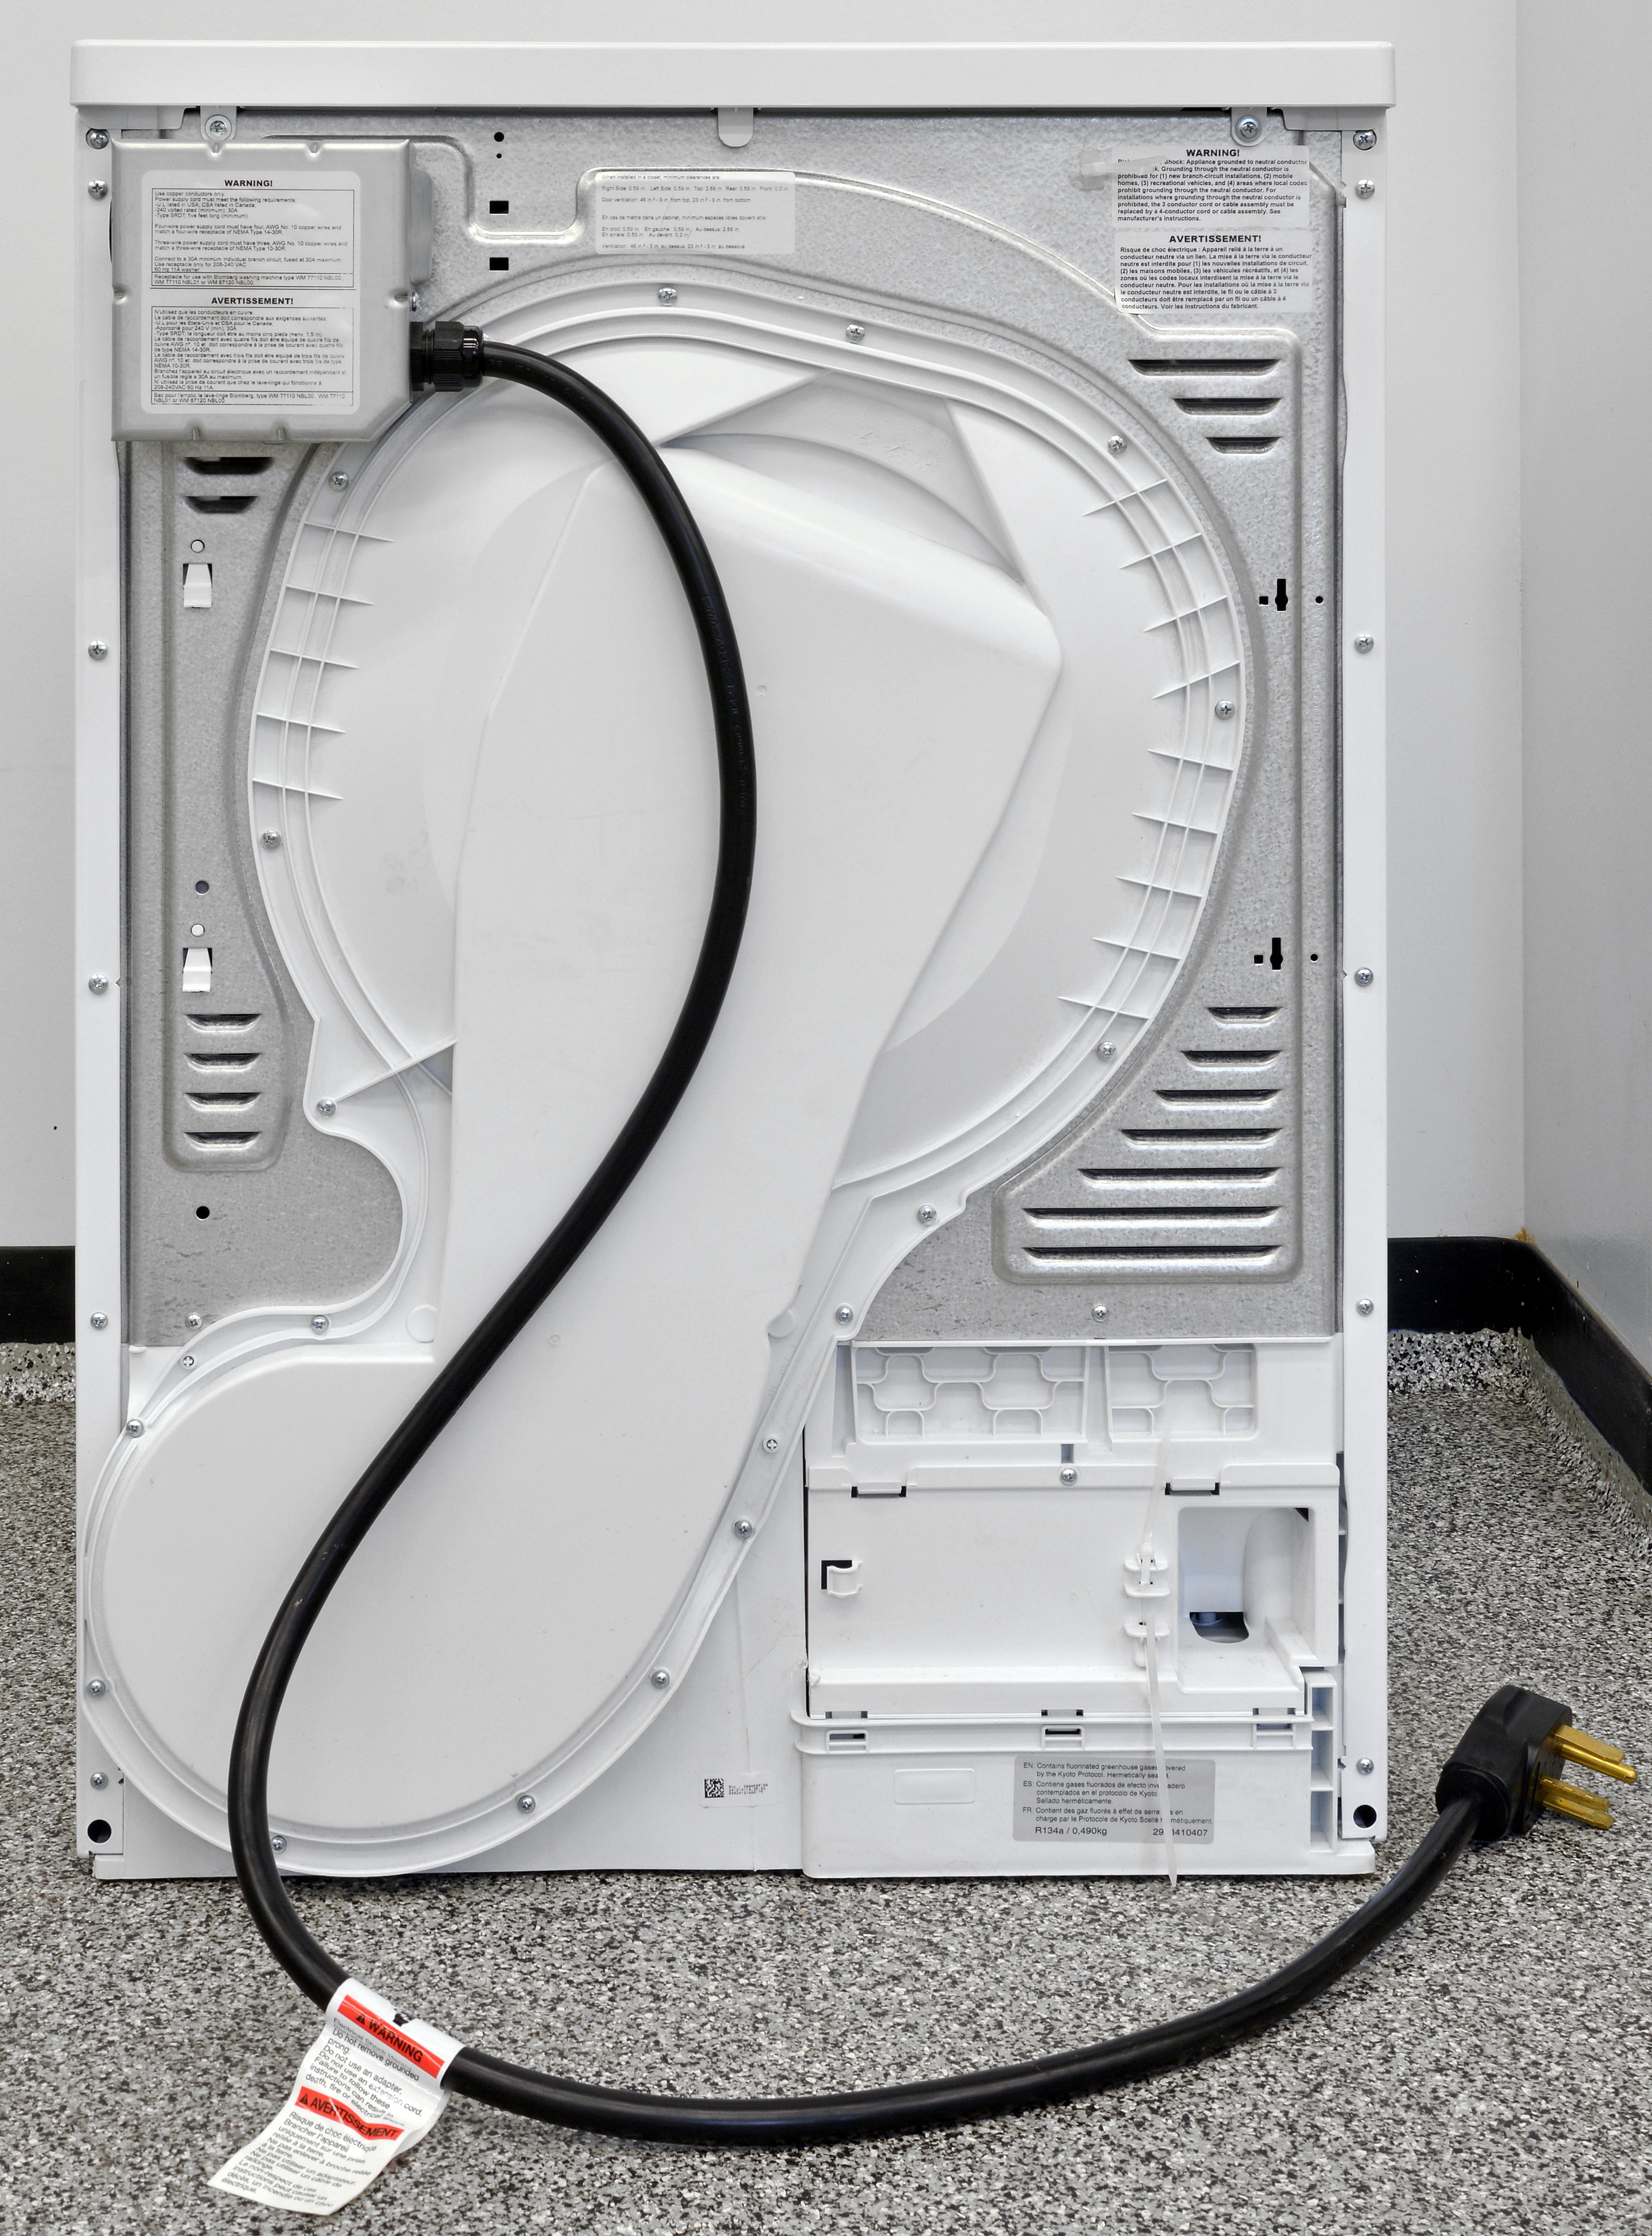 No vent, just a hose for draining water. Plus, the Blomberg DHP24412W comes with a built-in power cable!